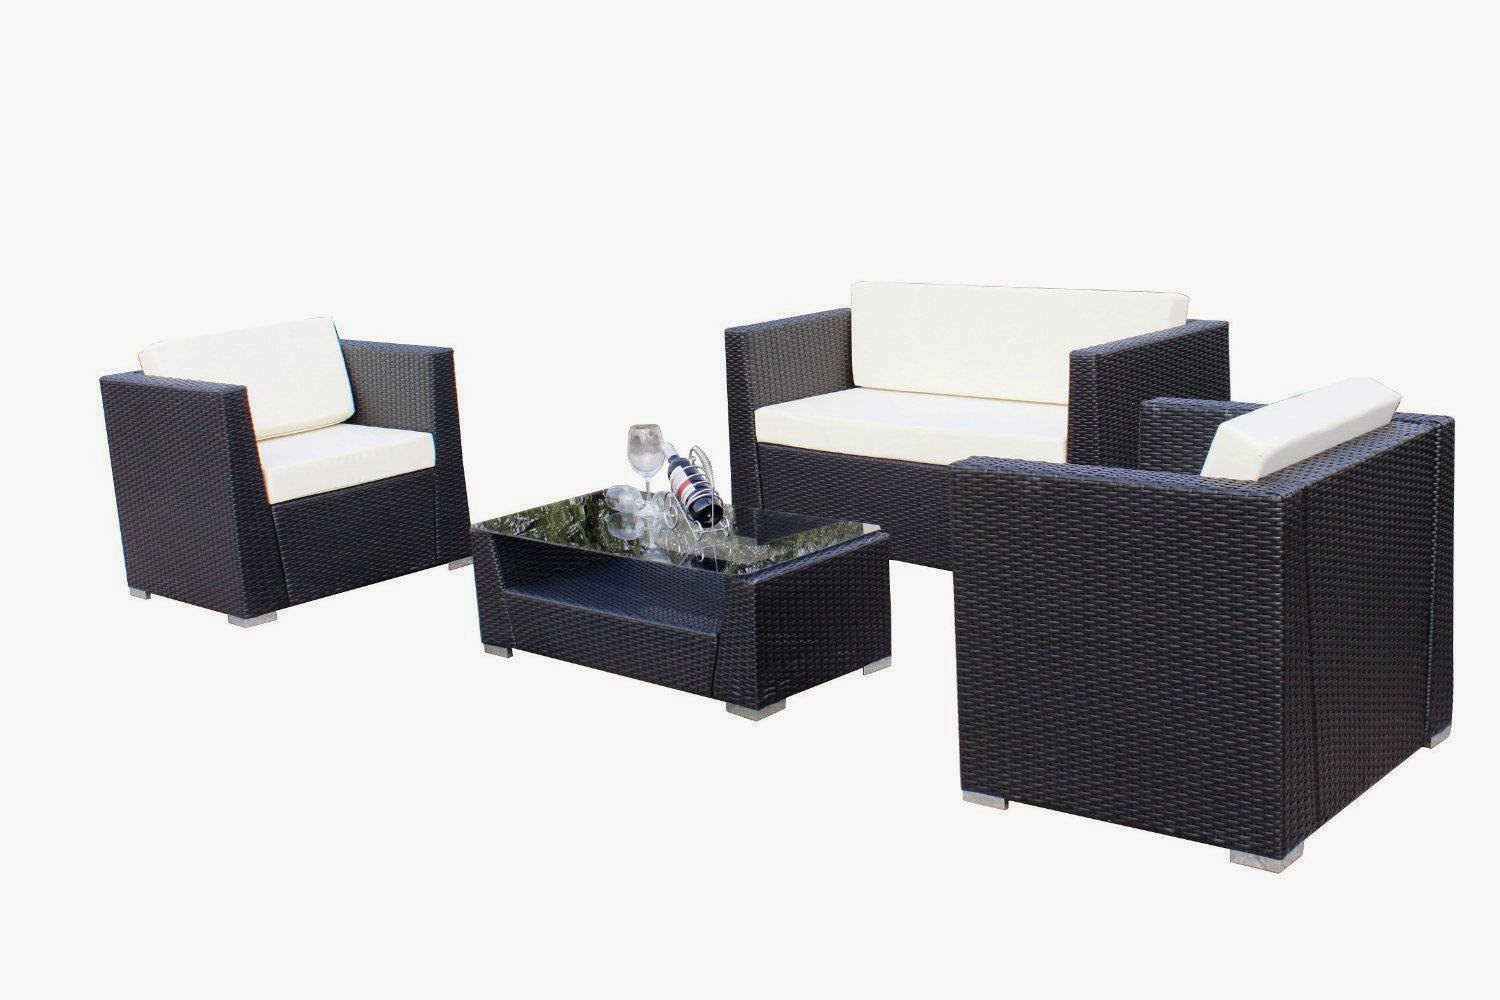 Luxury Wicker Patio Sectional Indoor Outdoor Sofa Furniture Set W/ White and Grey Cushion Covers